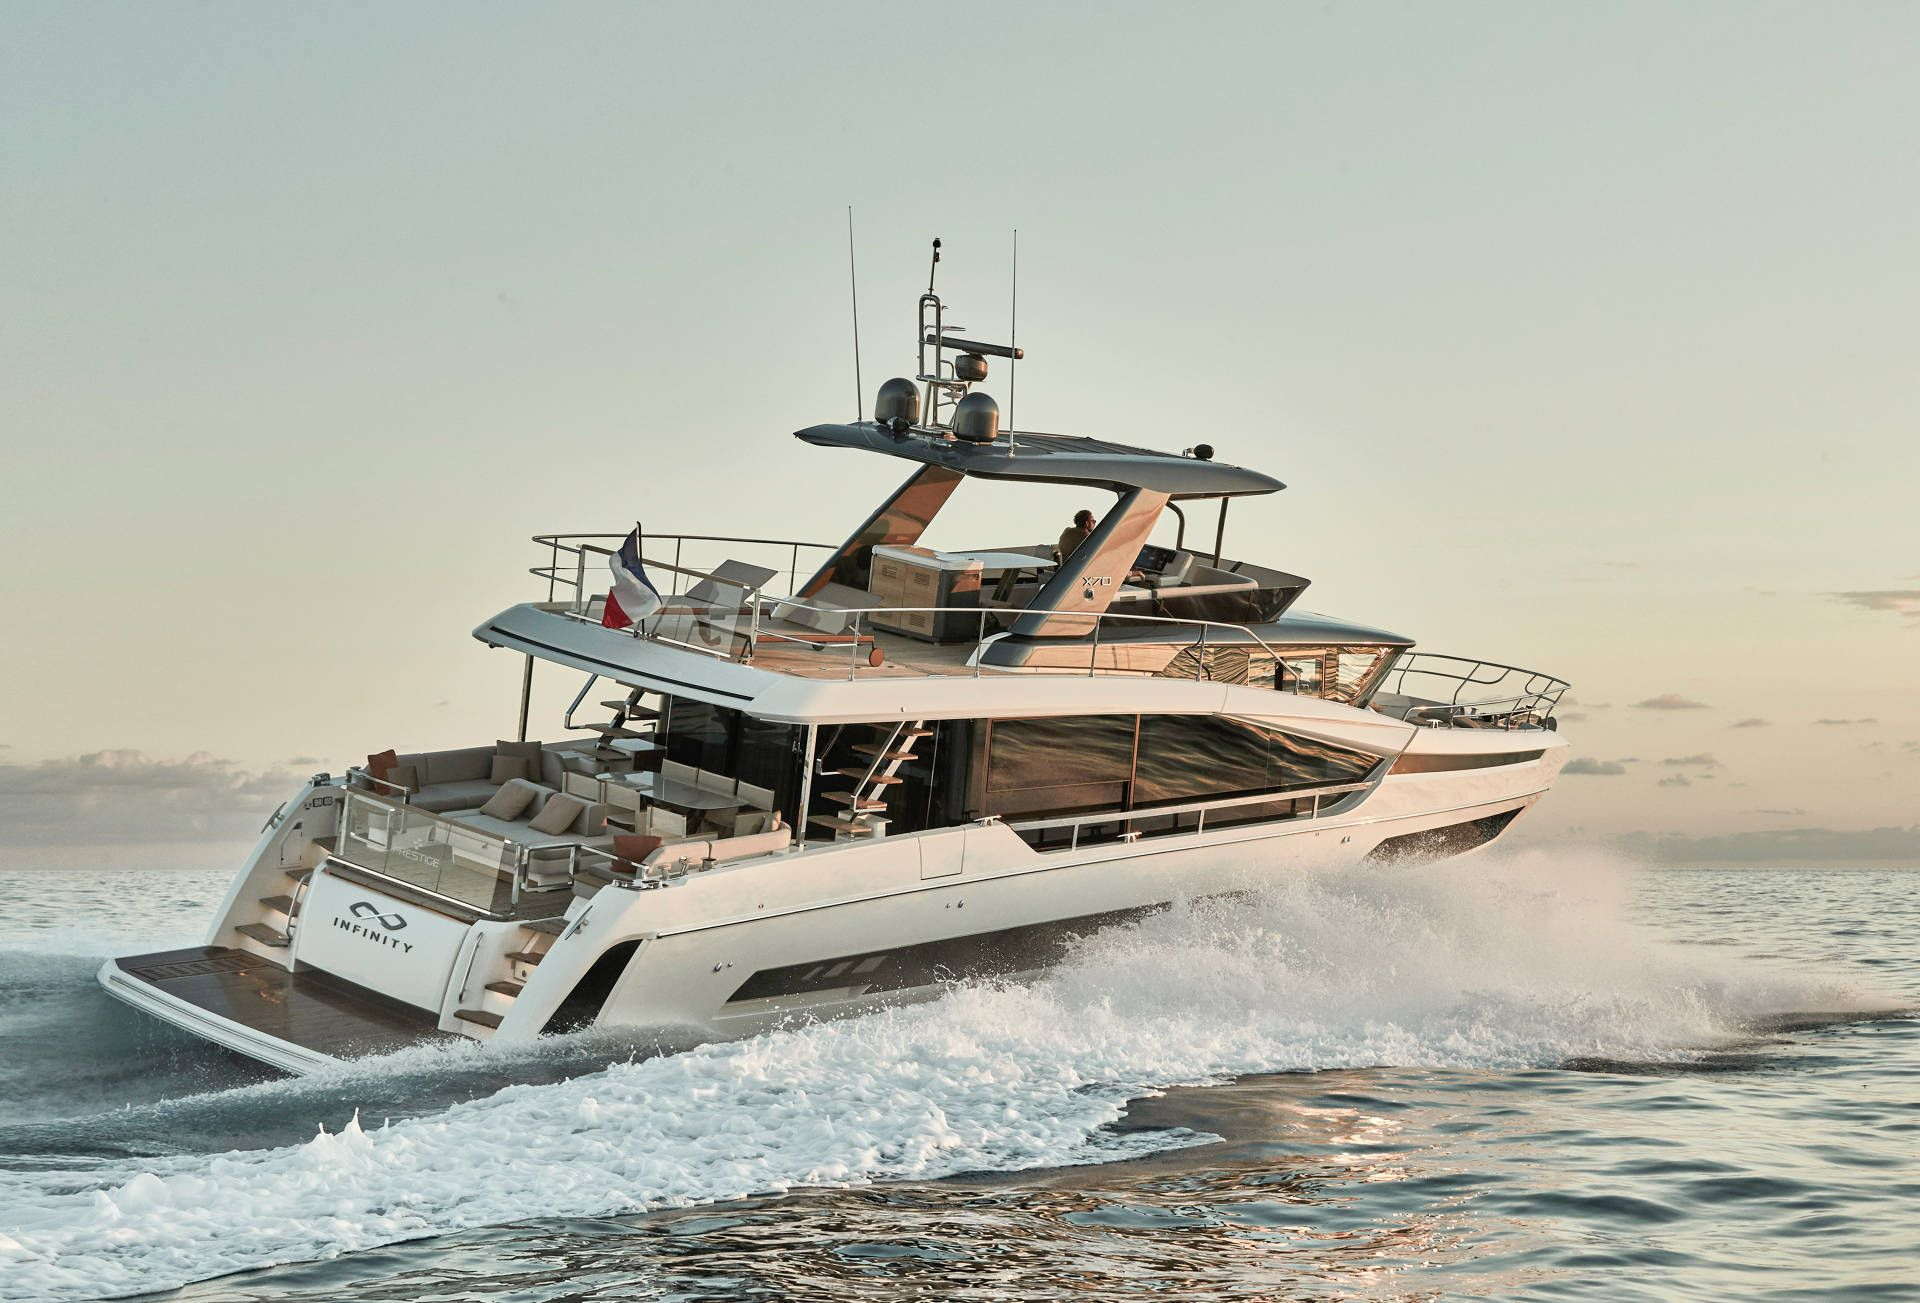 Prestige X70 pictured cruising from the rear